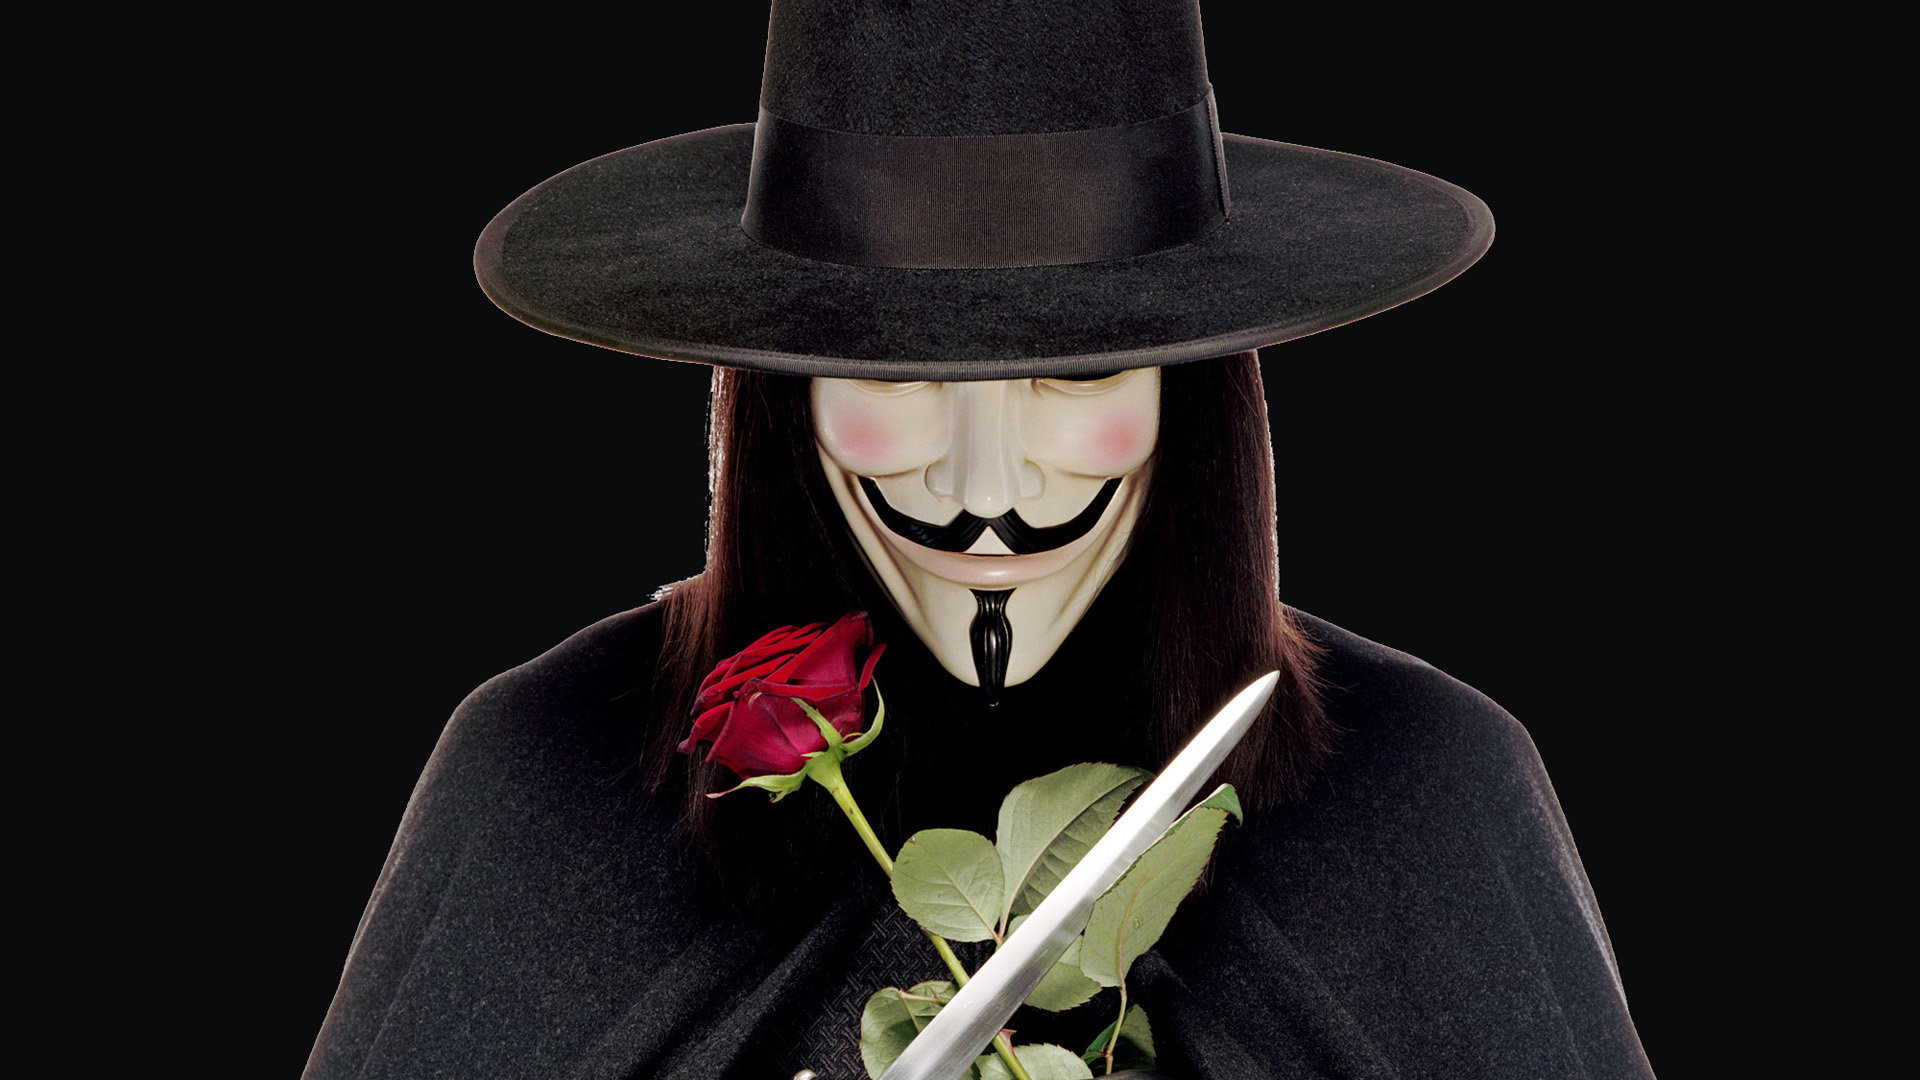 1920x1200 Anonymous Mask Wallpapers HD Free Download